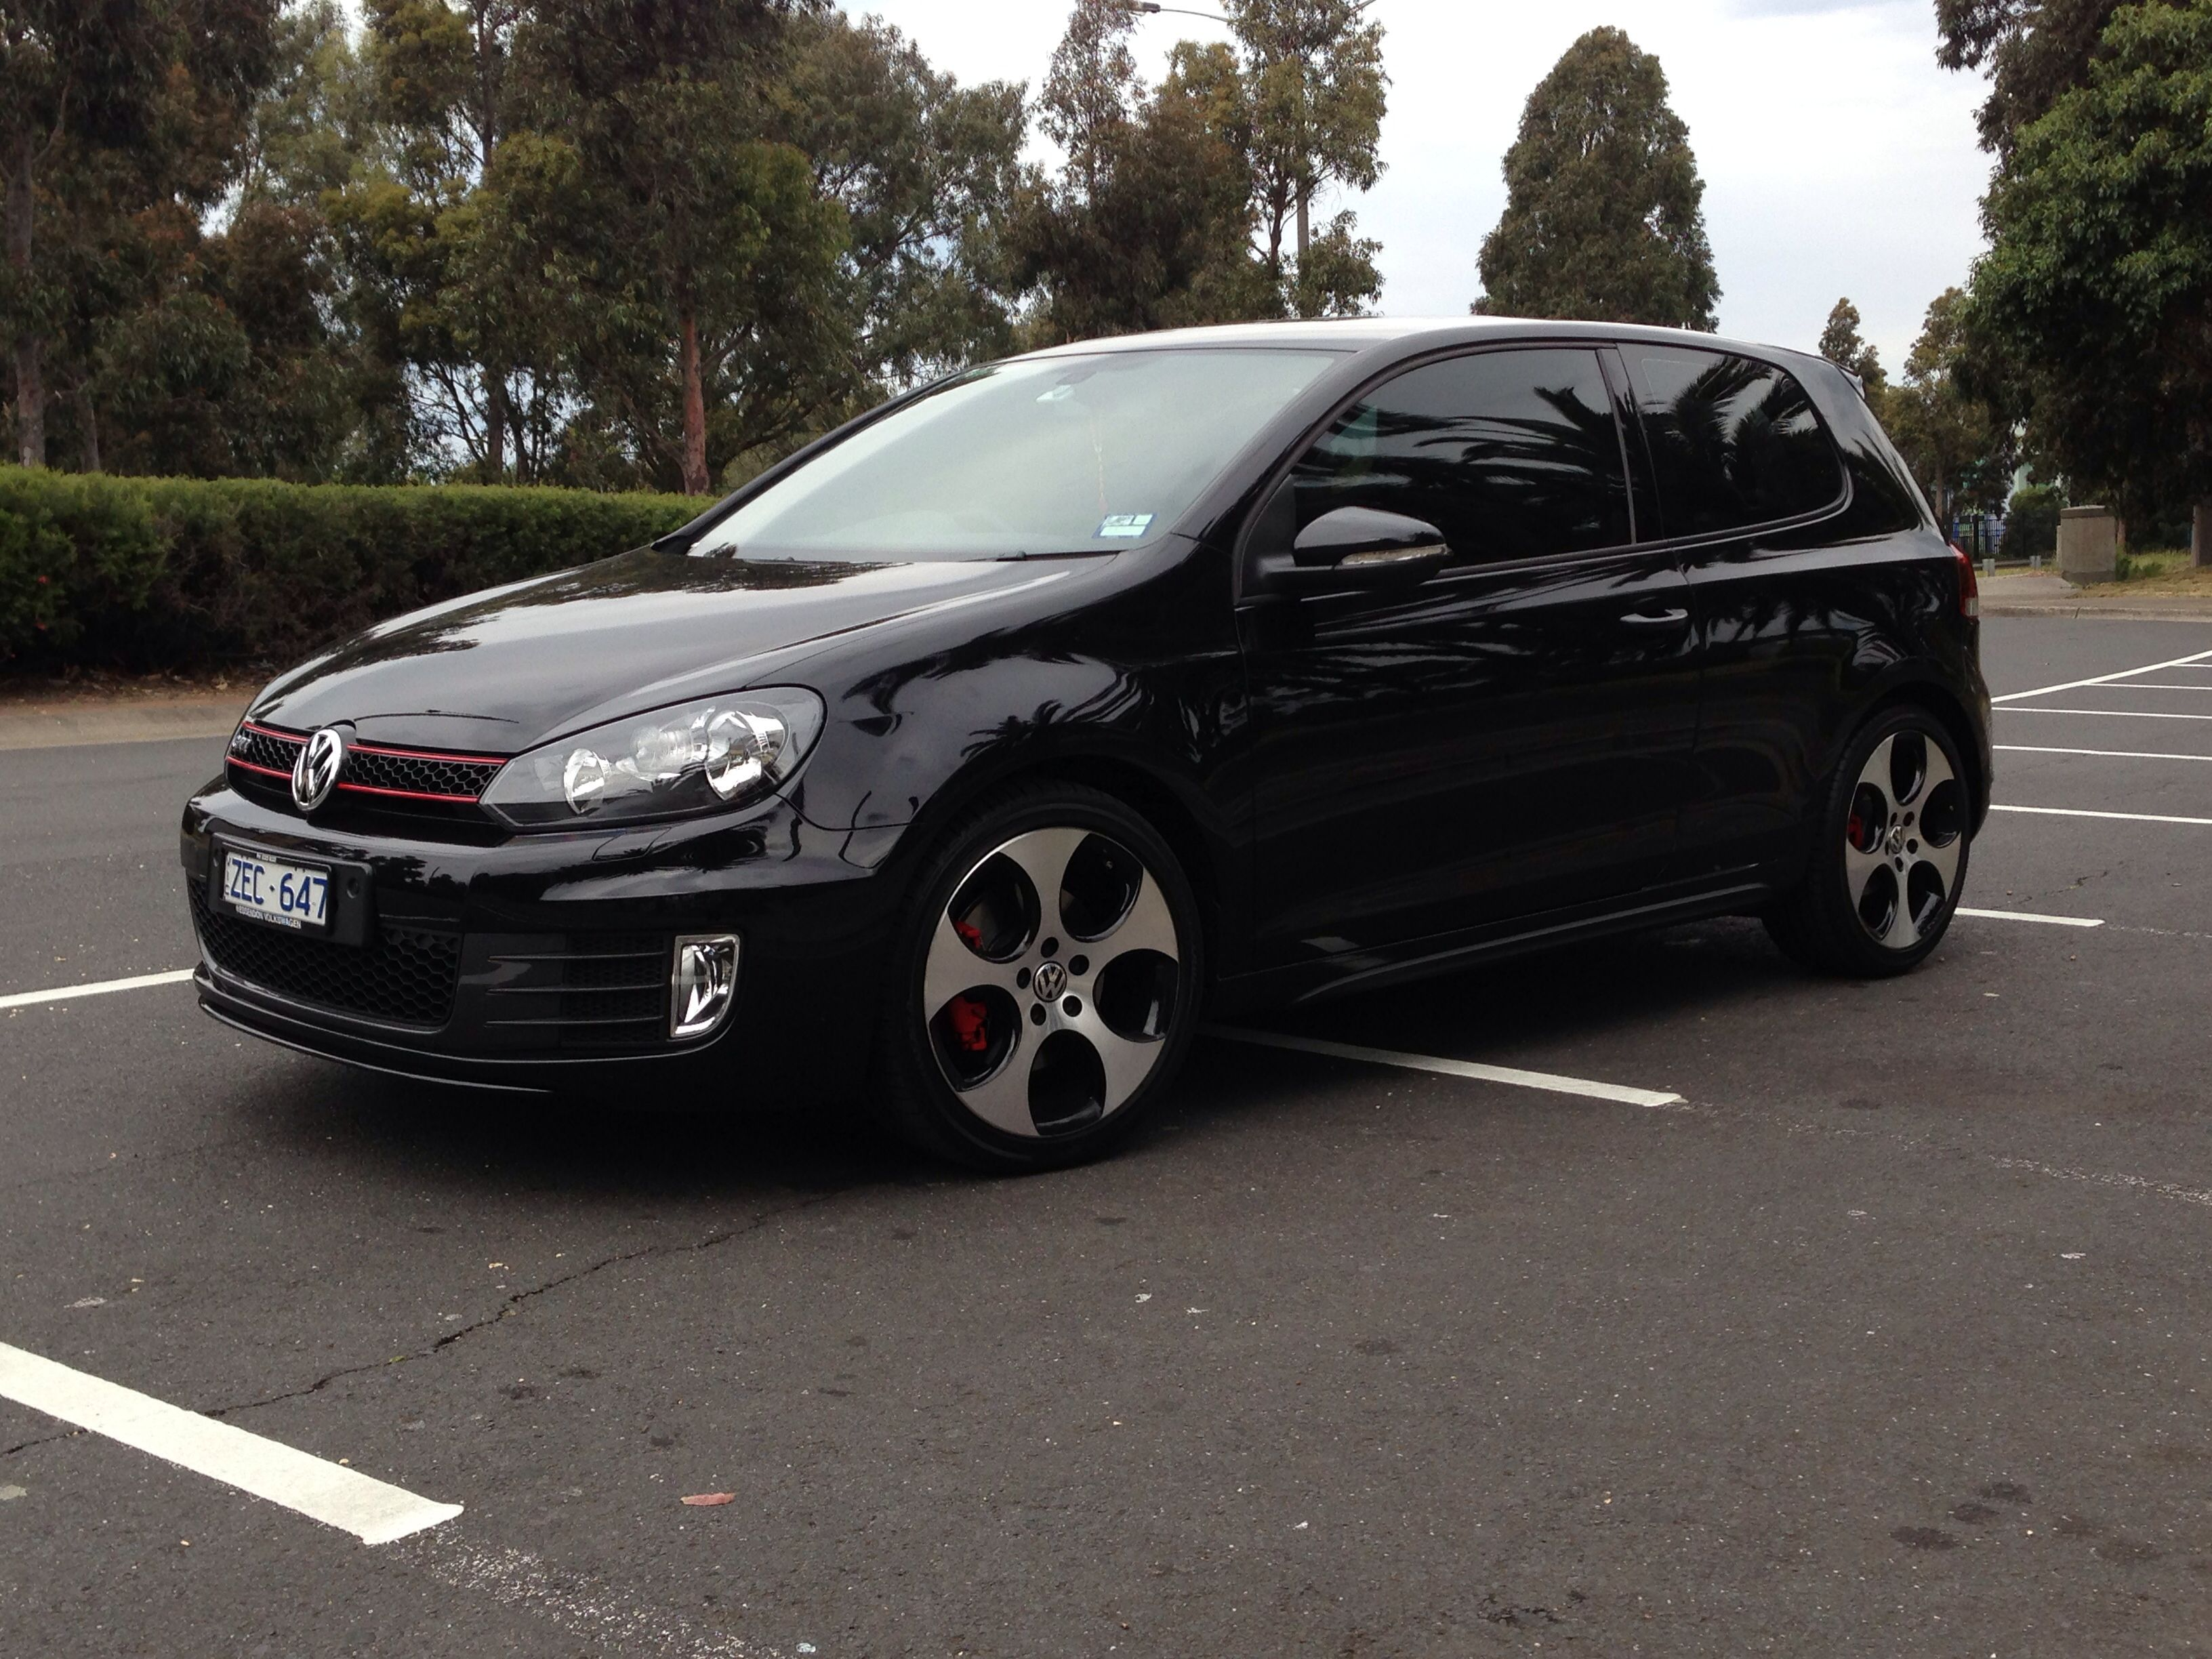 Used 2012 Volkswagen Golf Gti Mk5 Mk6 Gti Edition 35 For Sale In